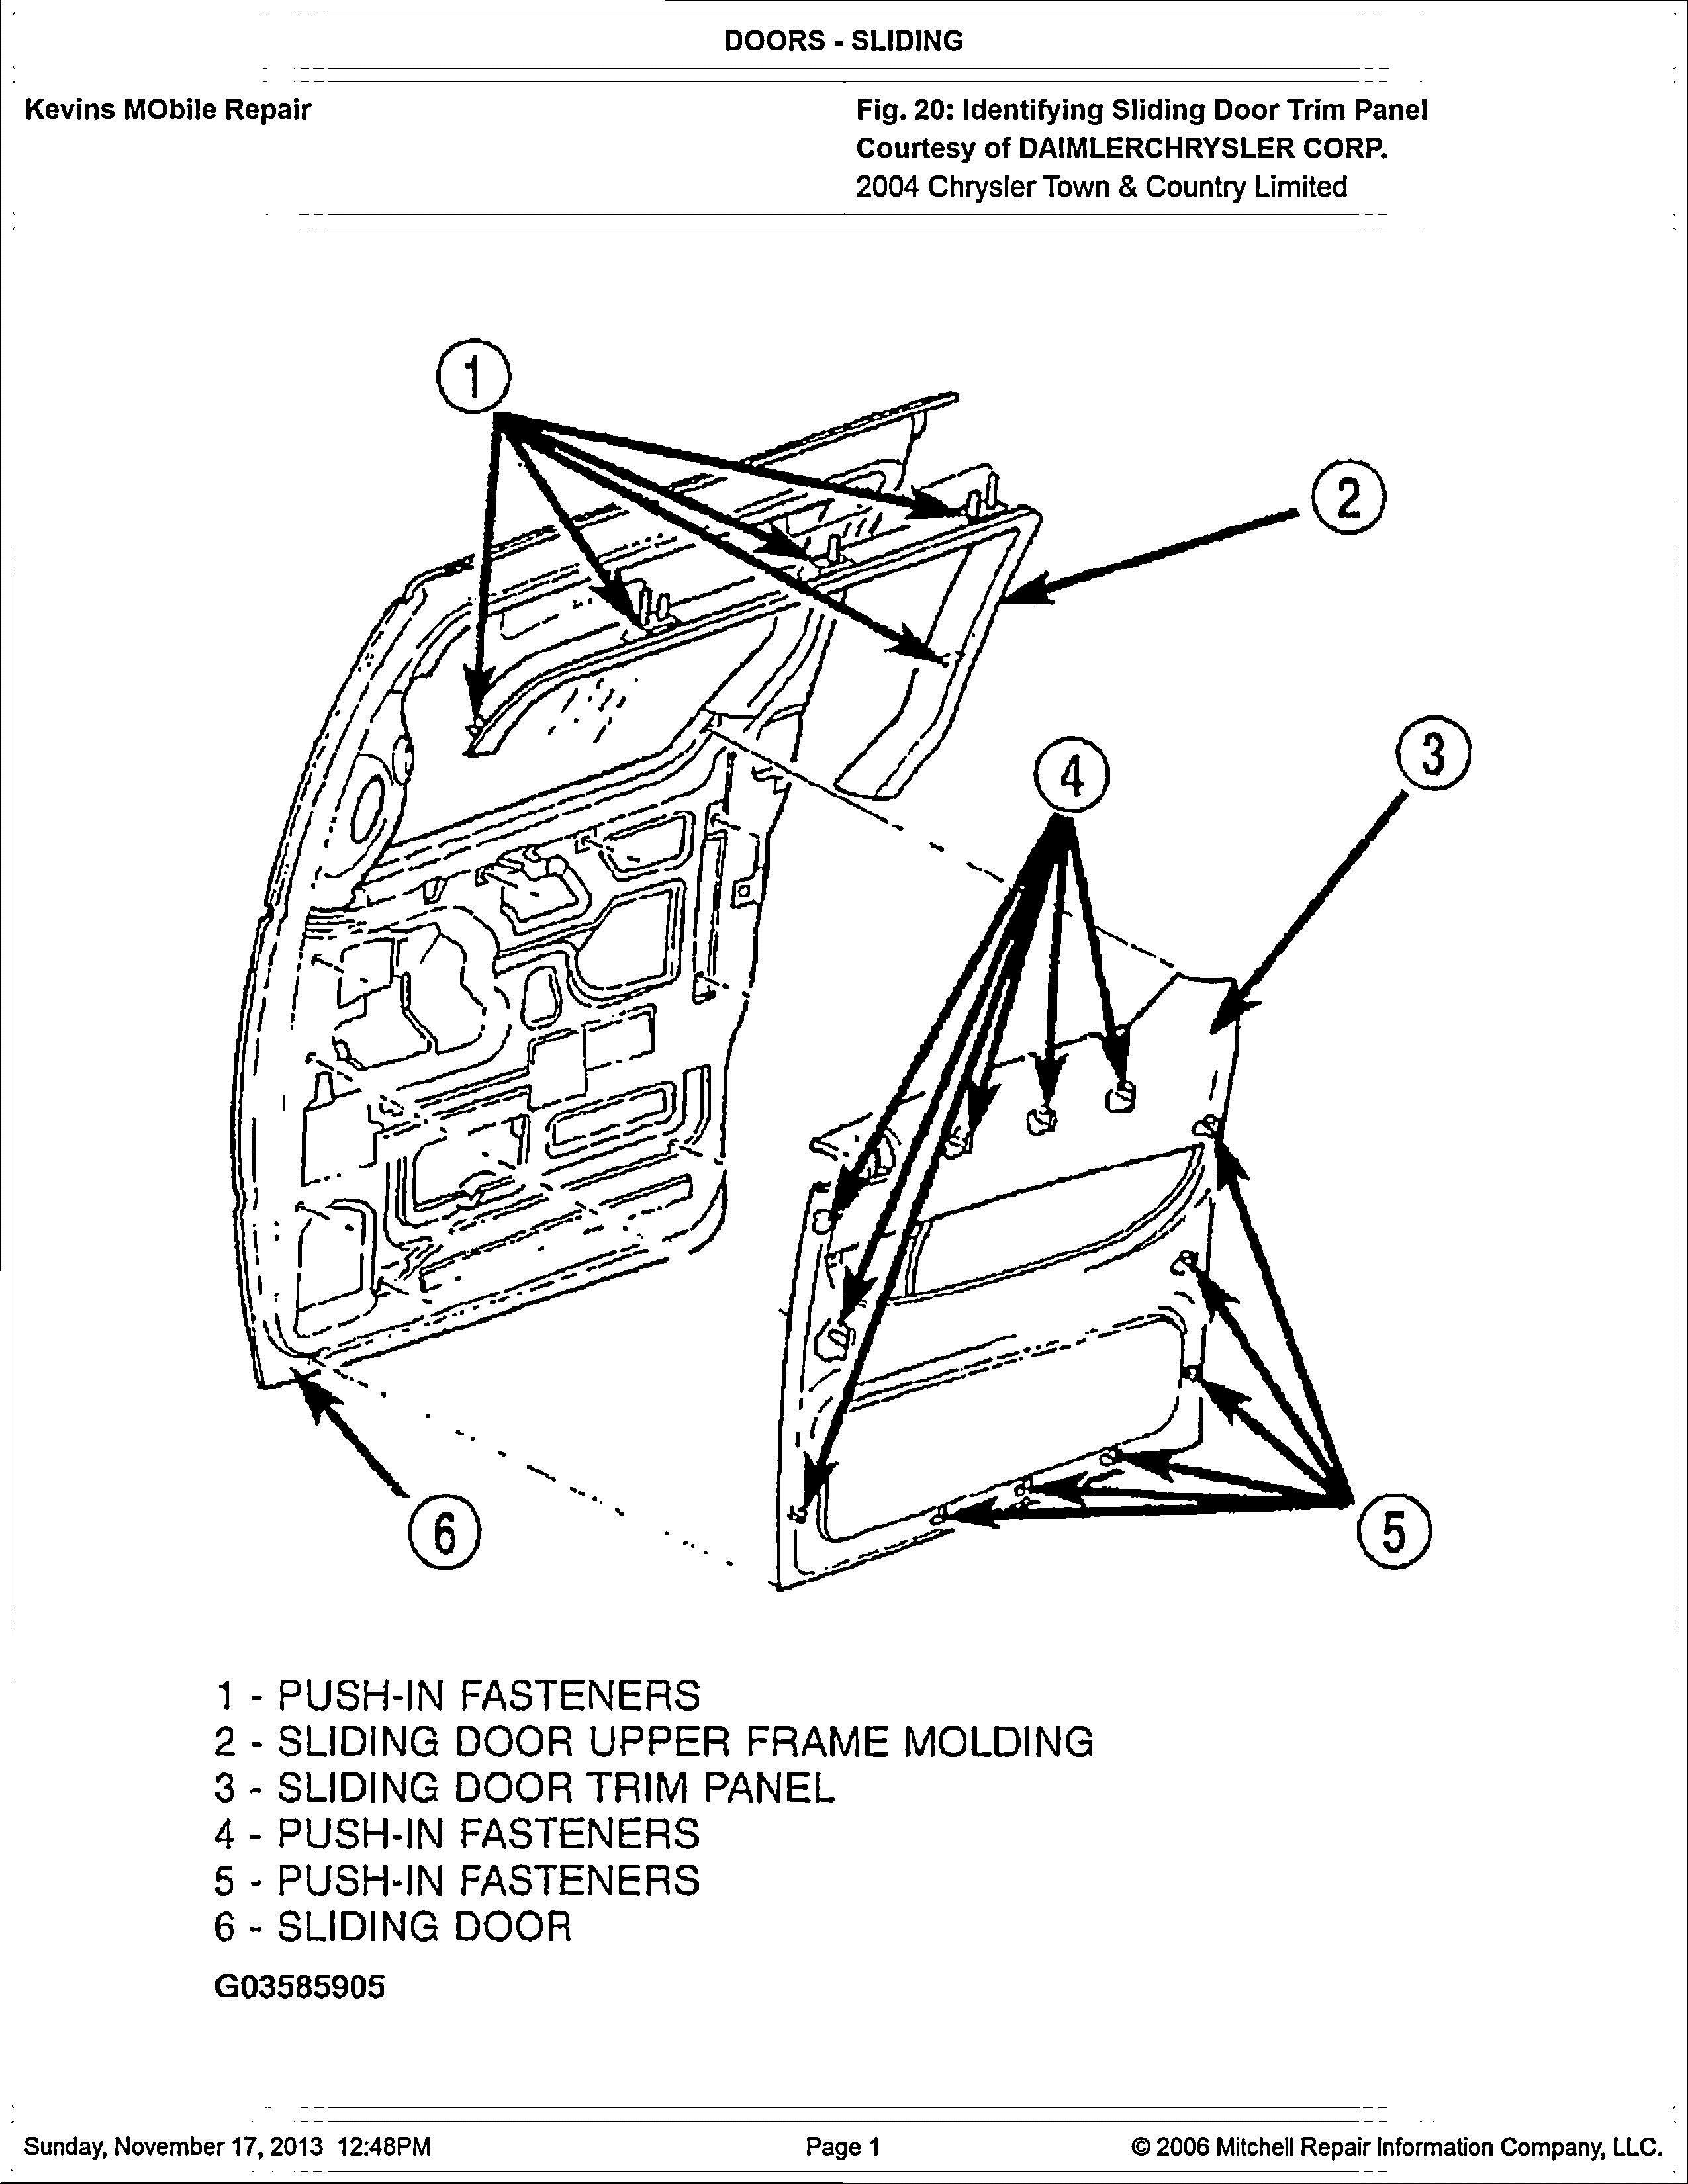 2007 Dodge Ram 1500 Trim Diagram Electrical Wiring Door Panel Removal How To Remove Sliding From 2013 Grand Diagrams